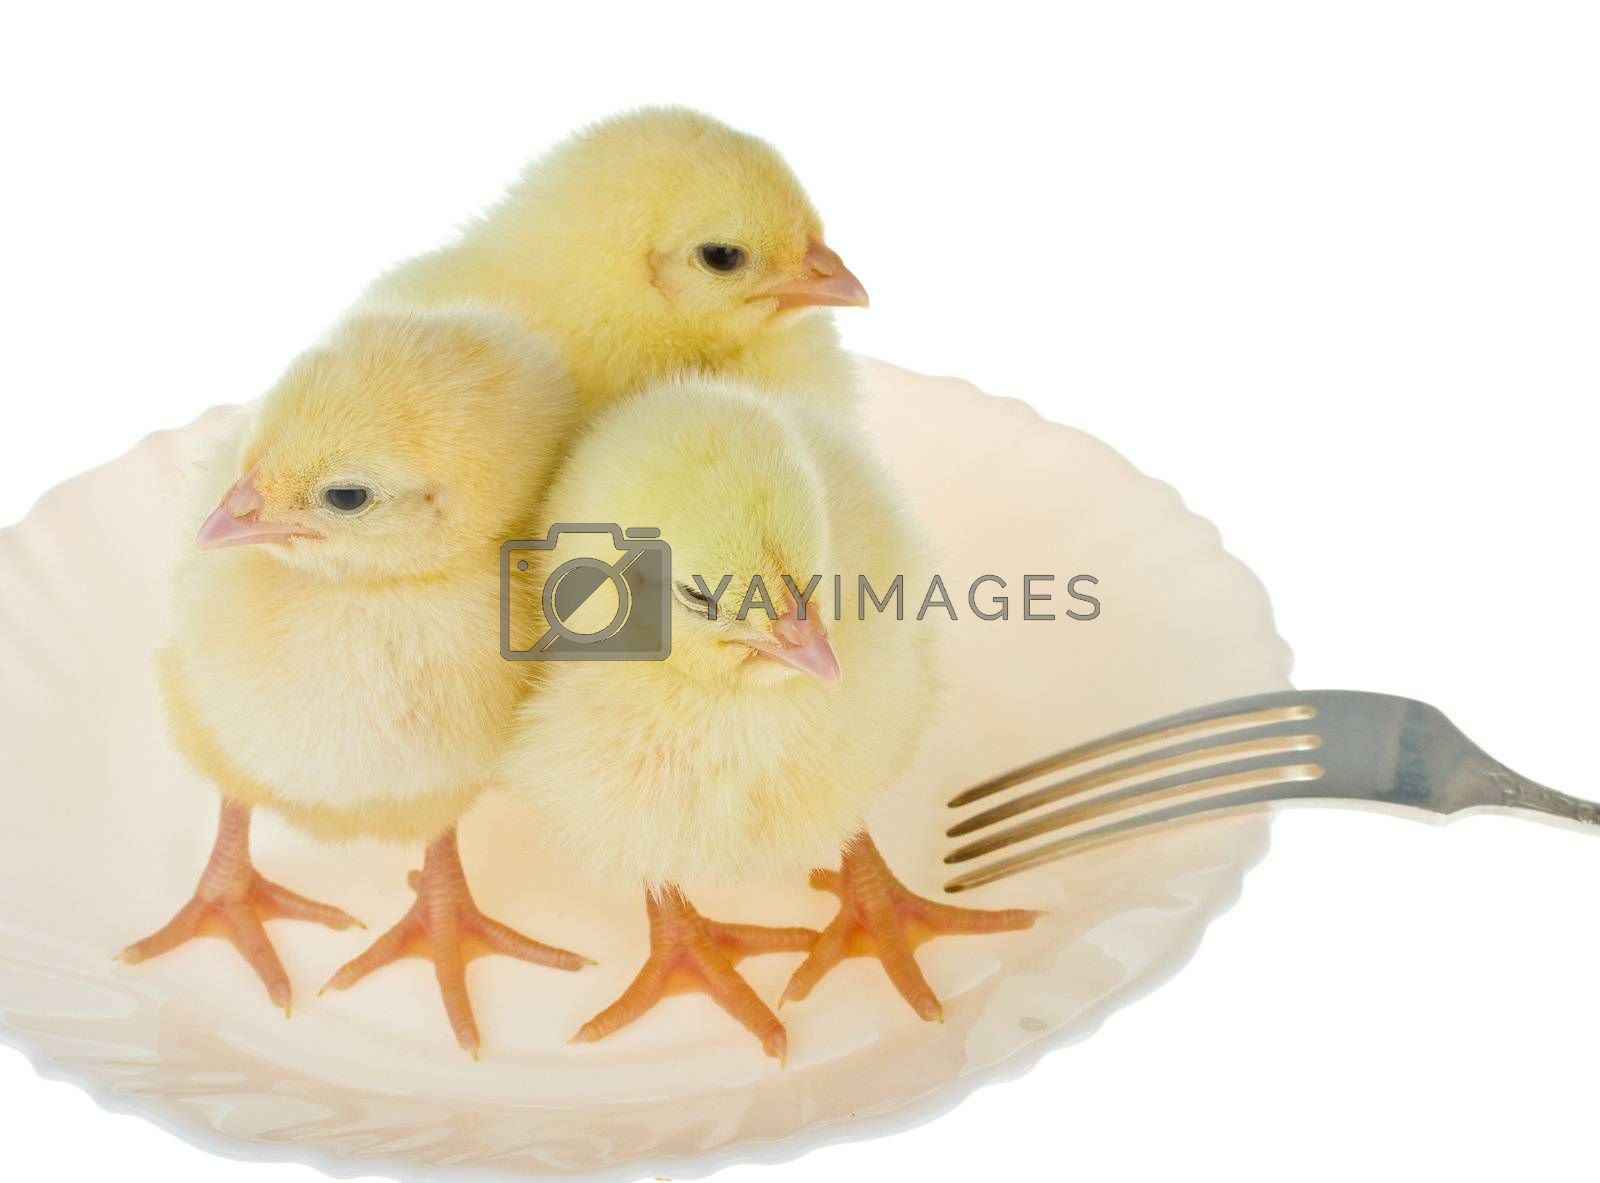 three newborn chicks as dinner, isolated on white